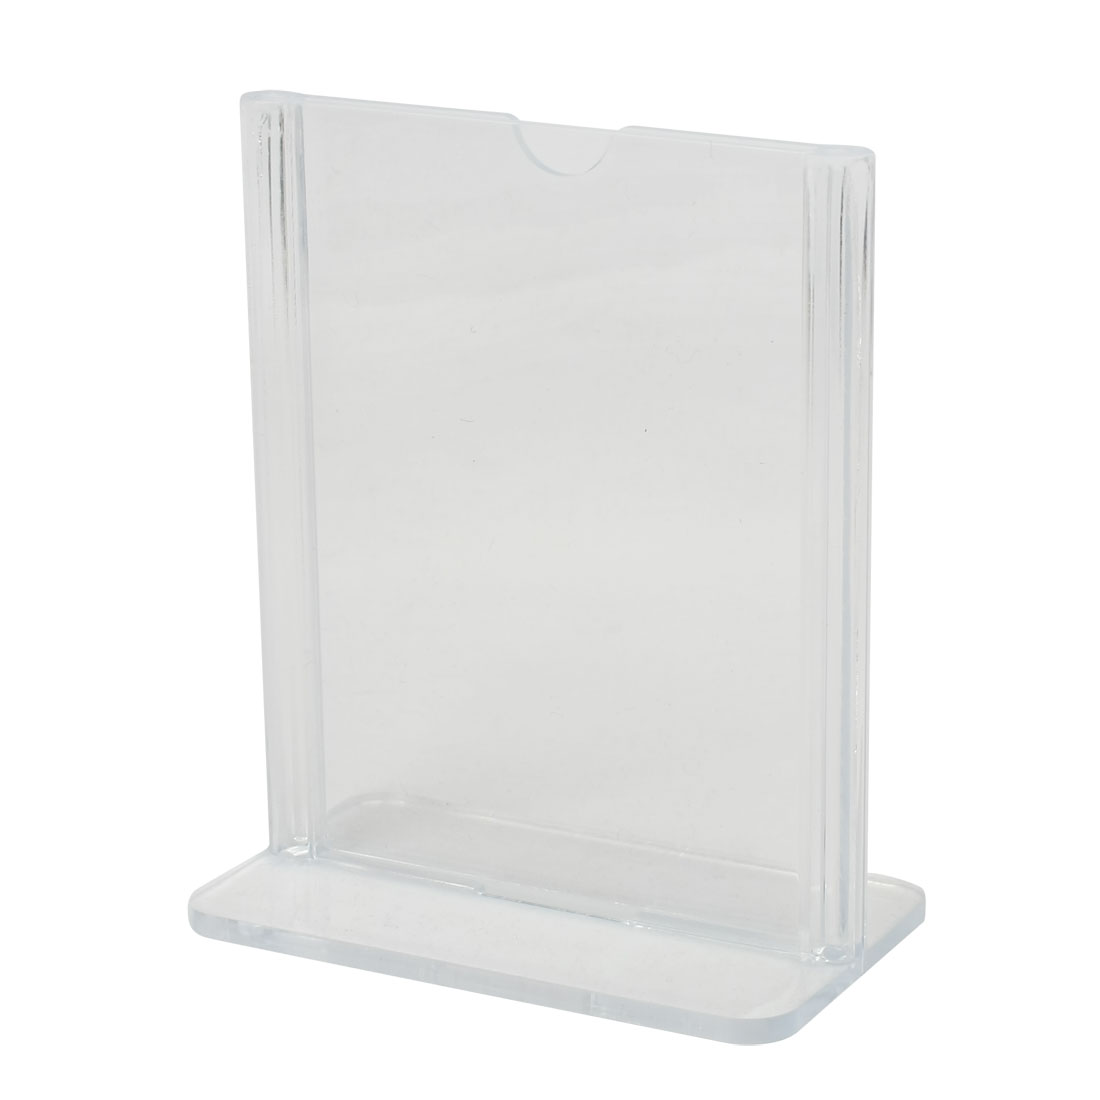 "2.5"" x 3.5"" Exhibition Paper Holder Display Stand"